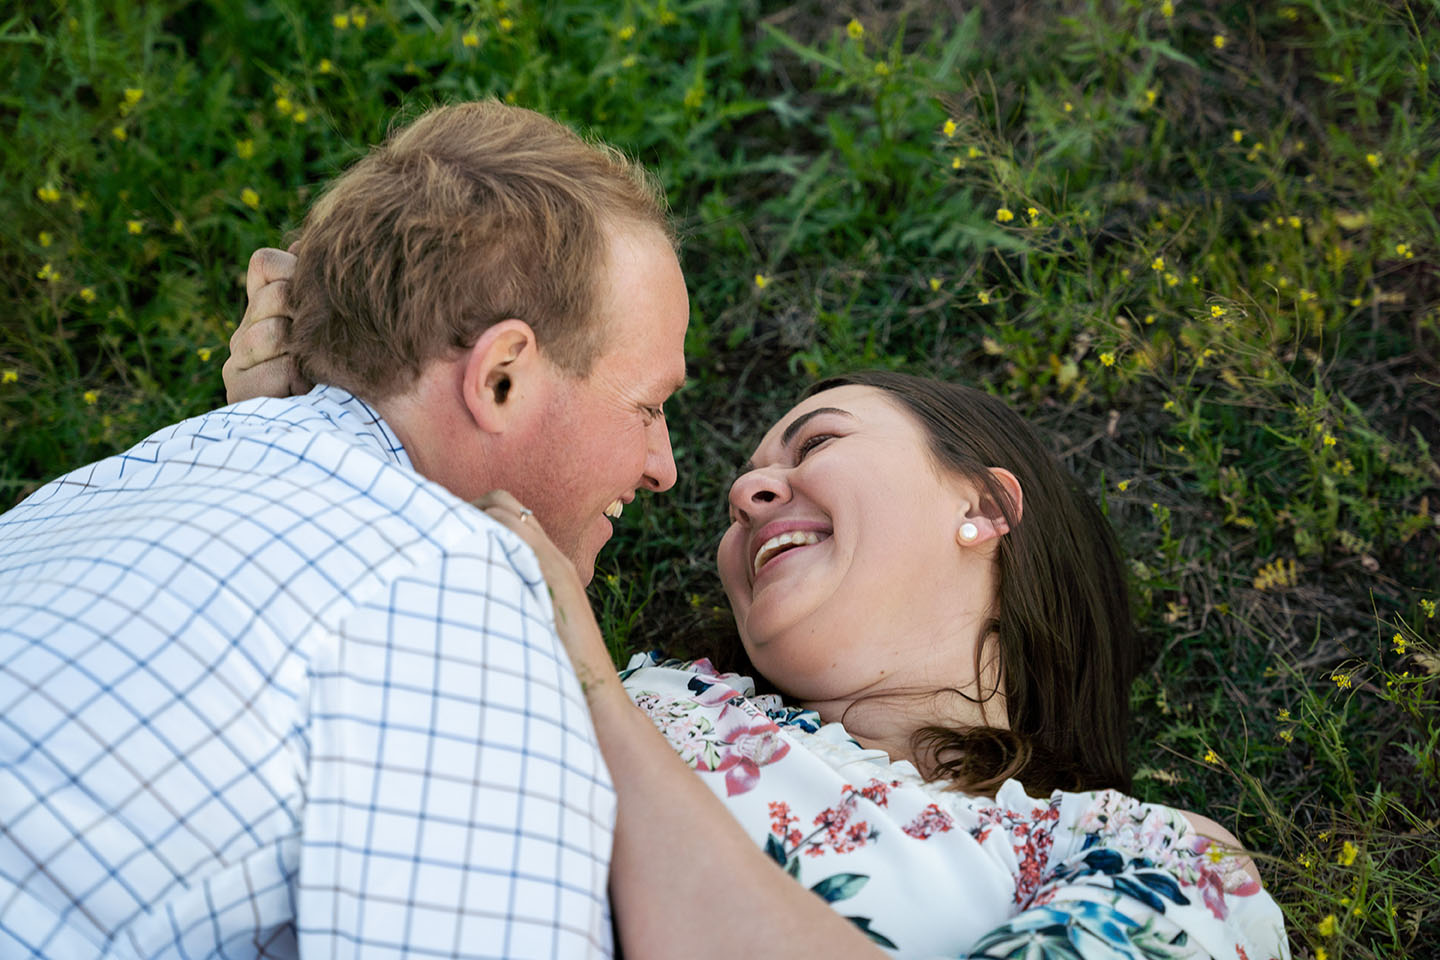 Engagement Photography - couple laying in grassy field